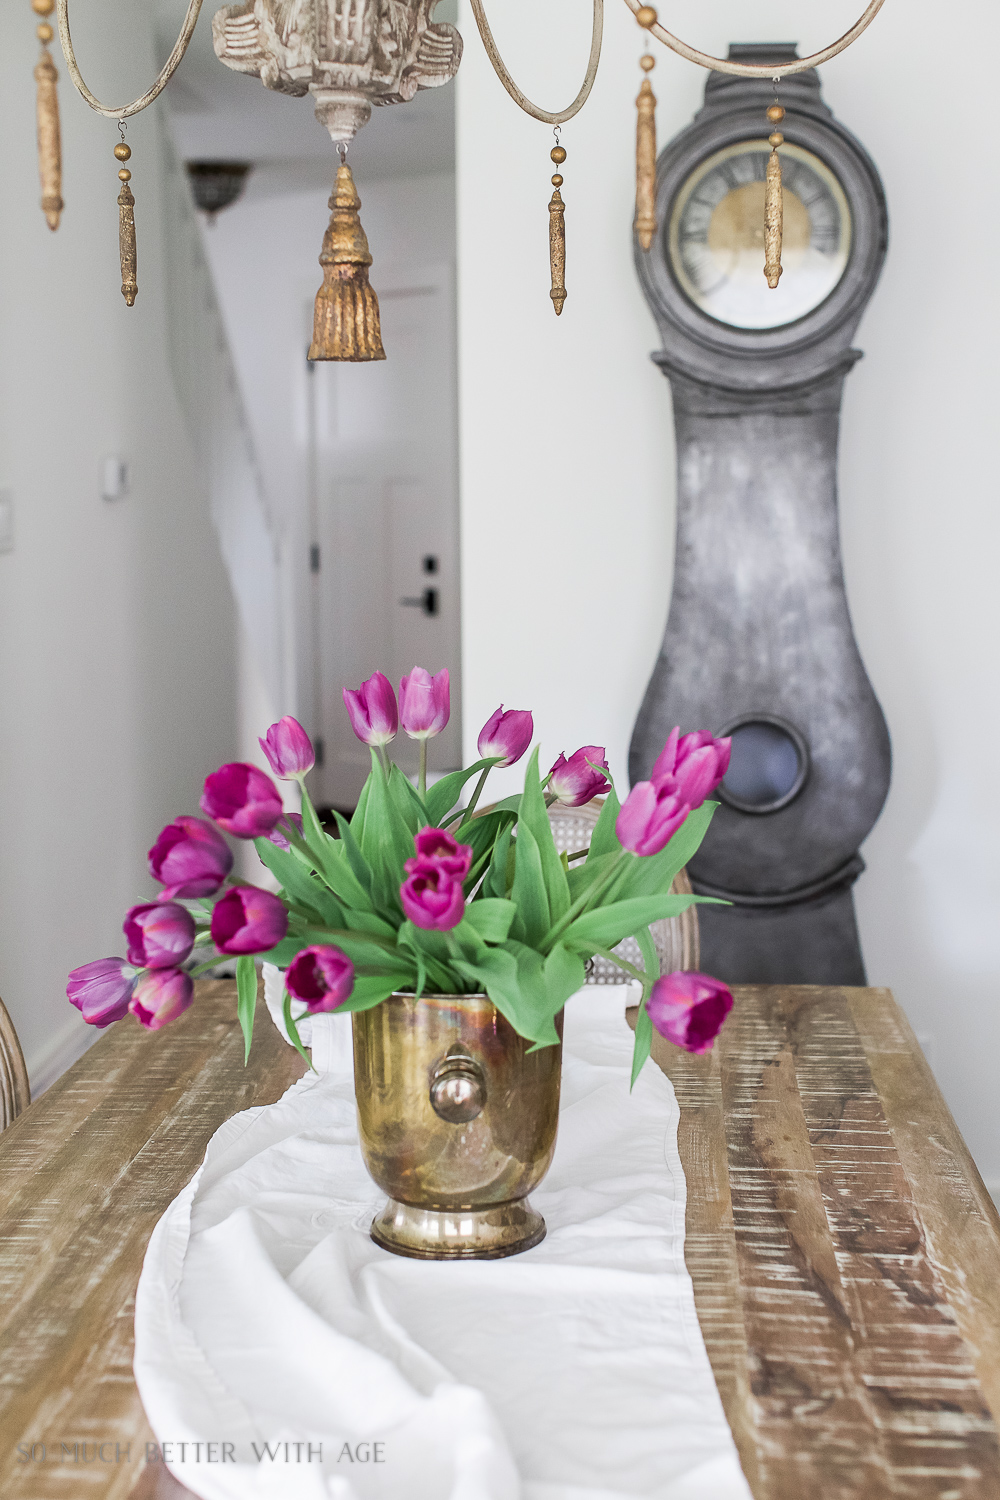 French Vintage Dining Room/Mora clock, tulips - So Much Better With Age